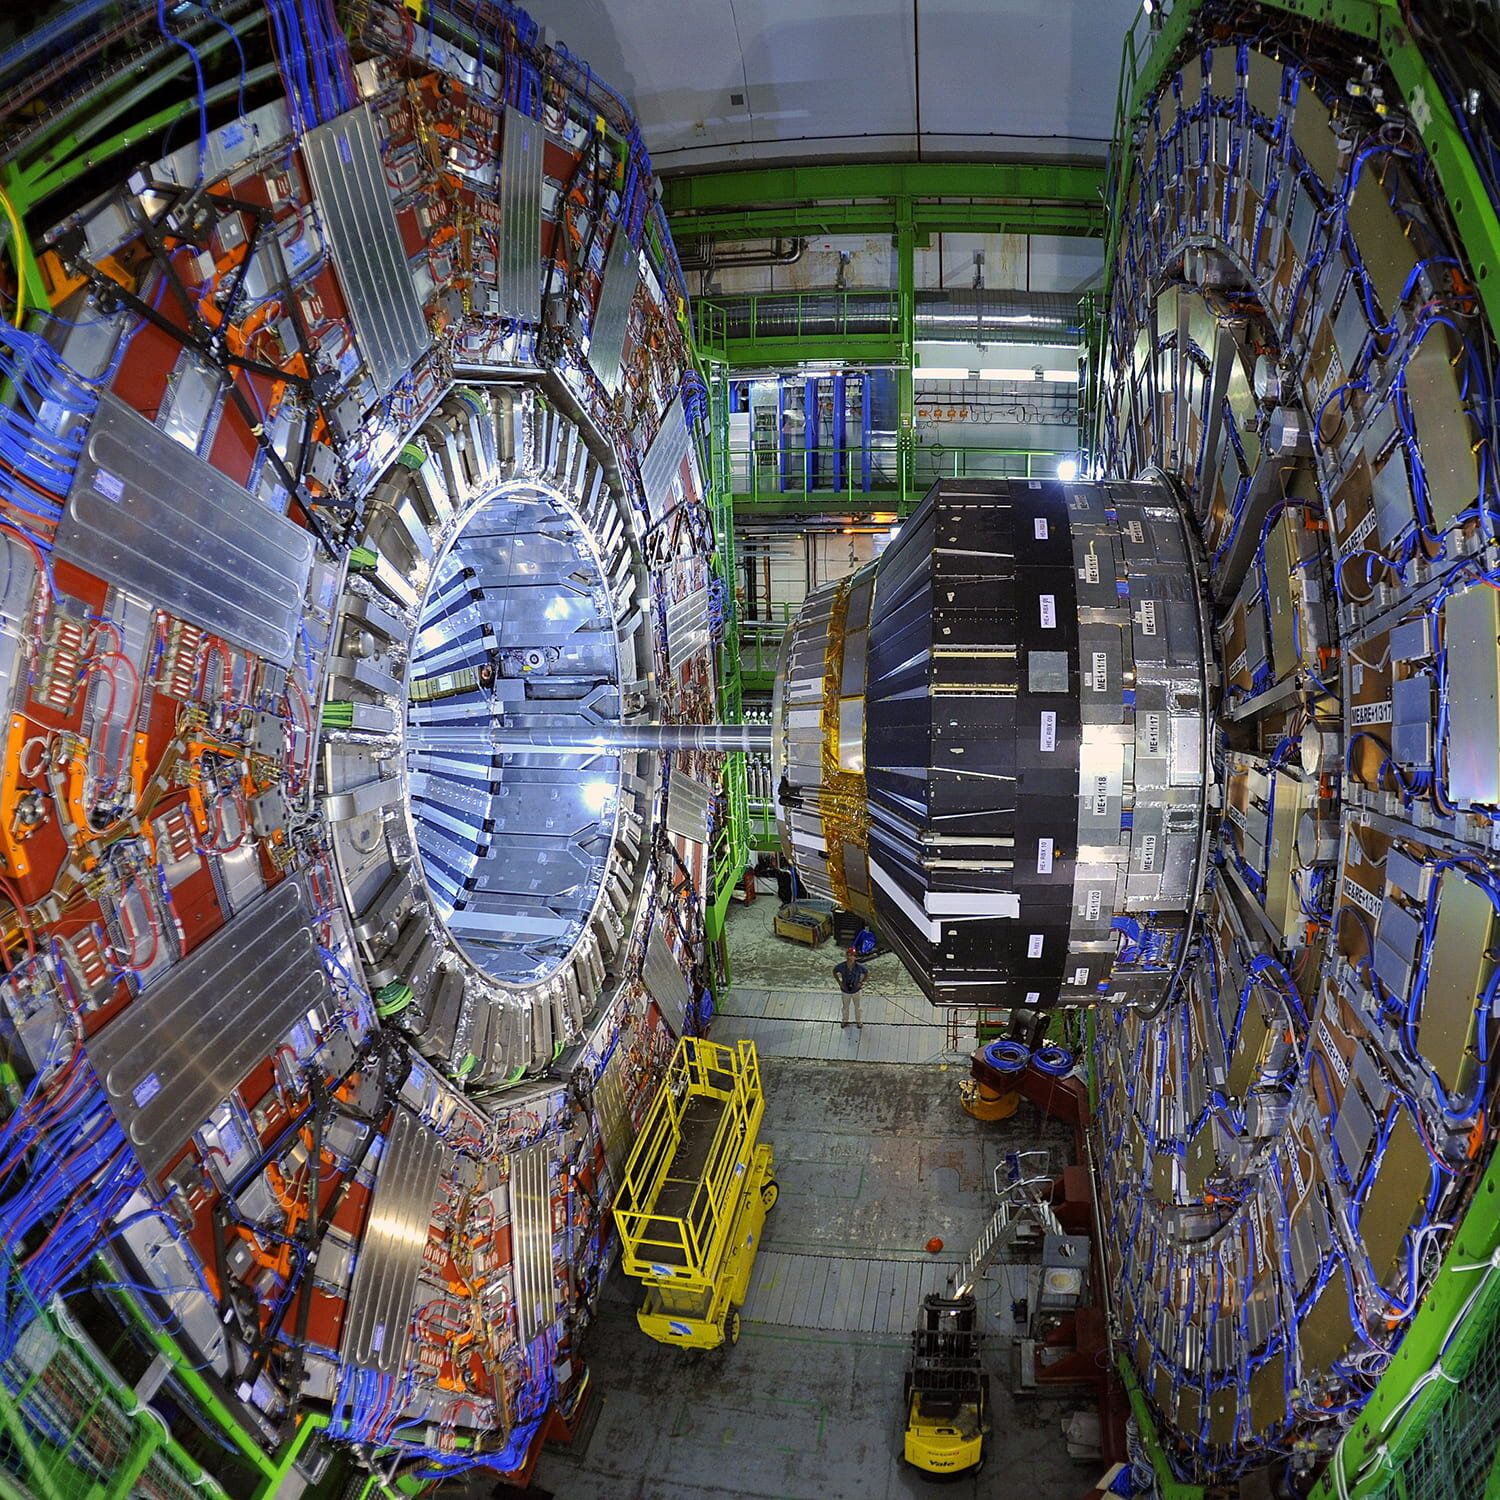 Understanding photon collisions could aid search for physics beyond the Standard Model